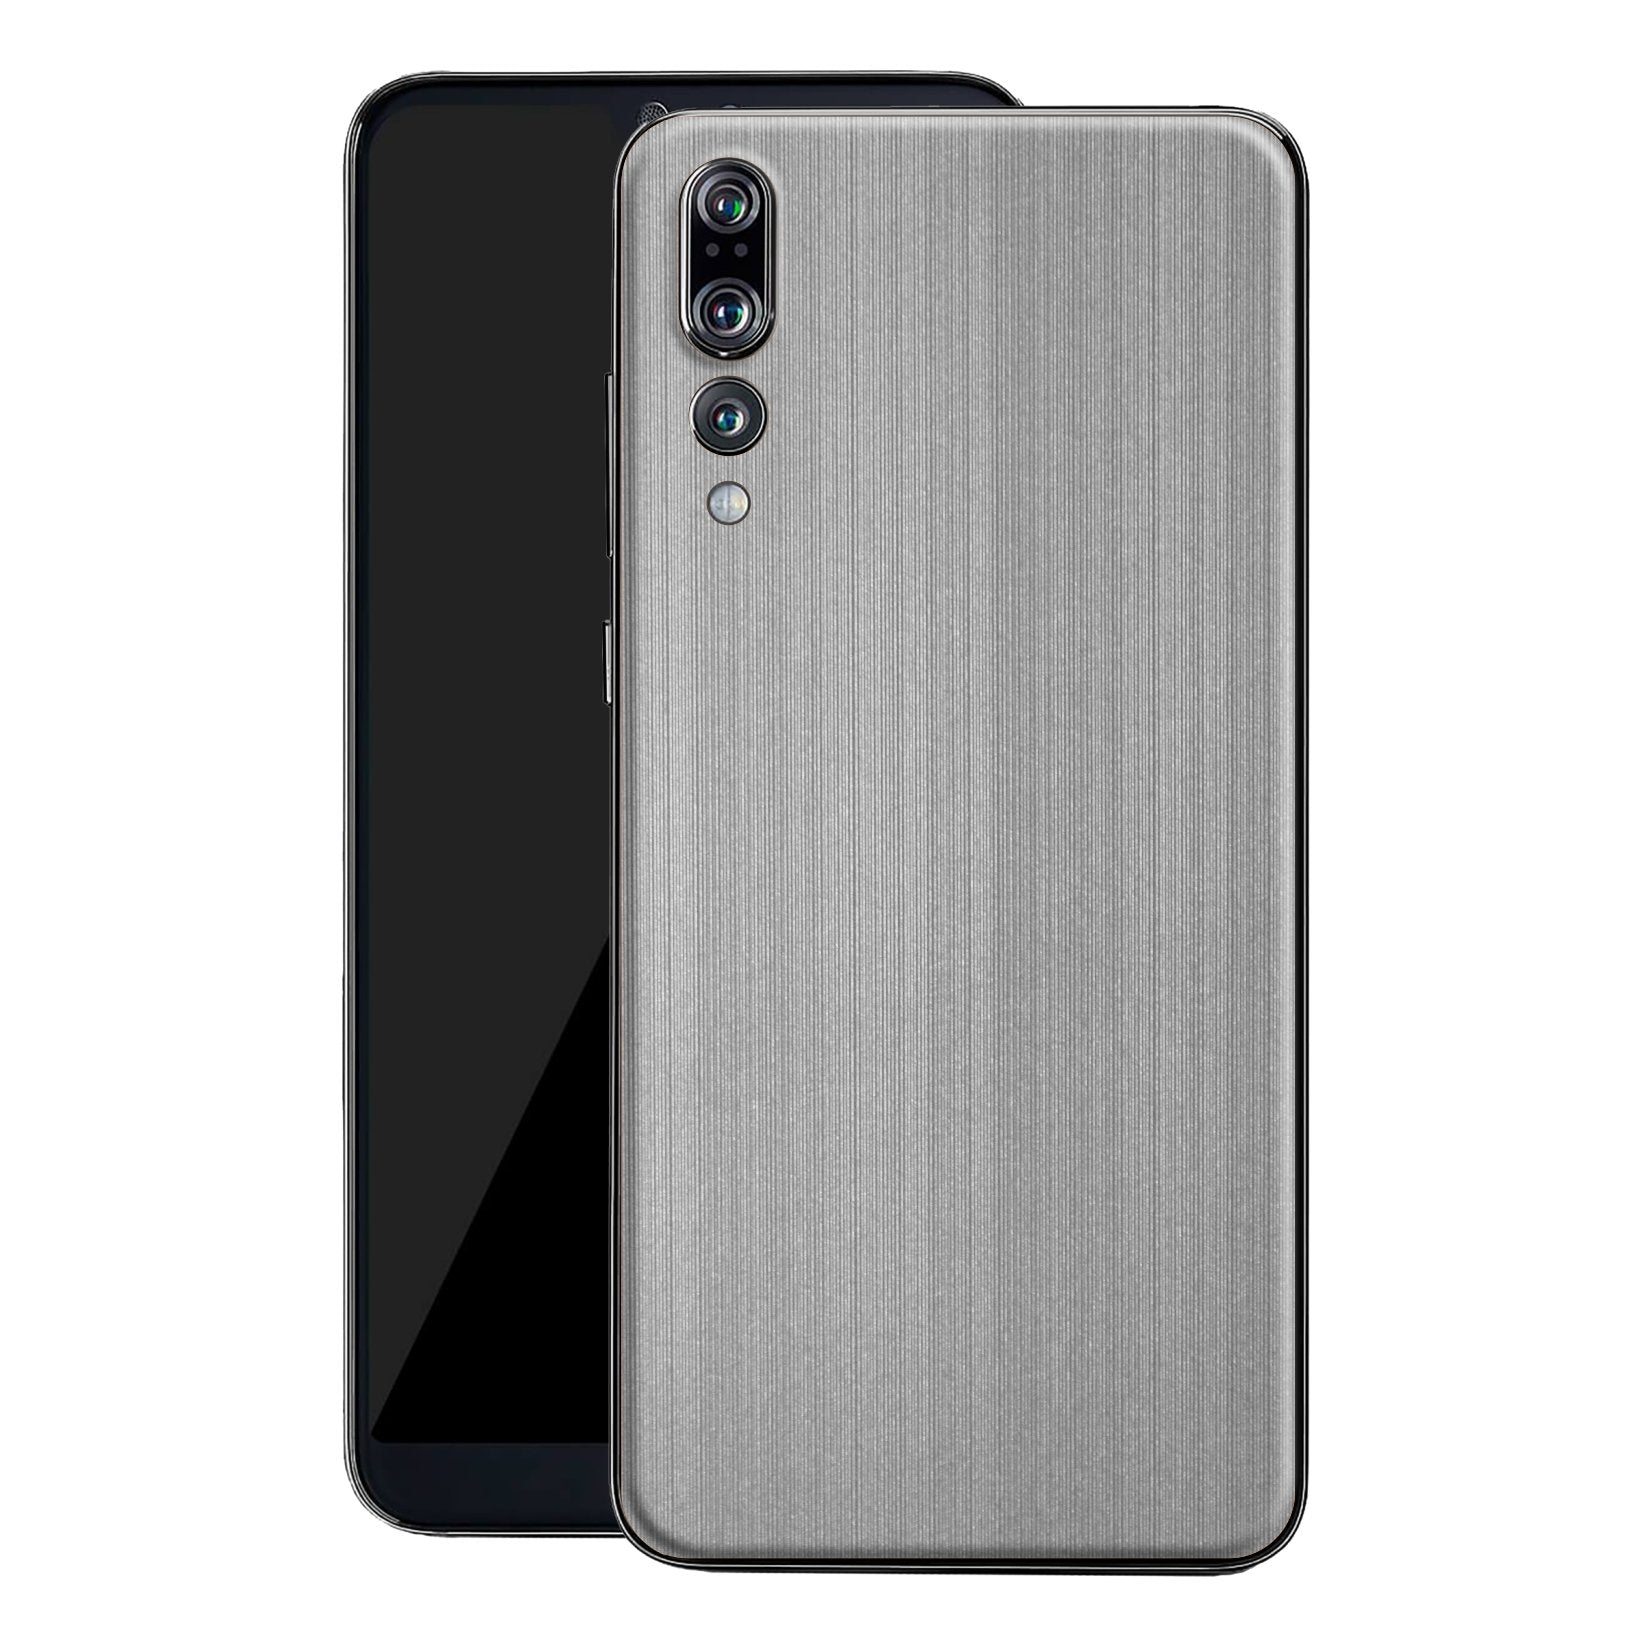 Huawei P20 PRO Premium Brushed STEEL Metallic Metal Skin, Decal, Wrap, Protector, Cover by EasySkinz | EasySkinz.com